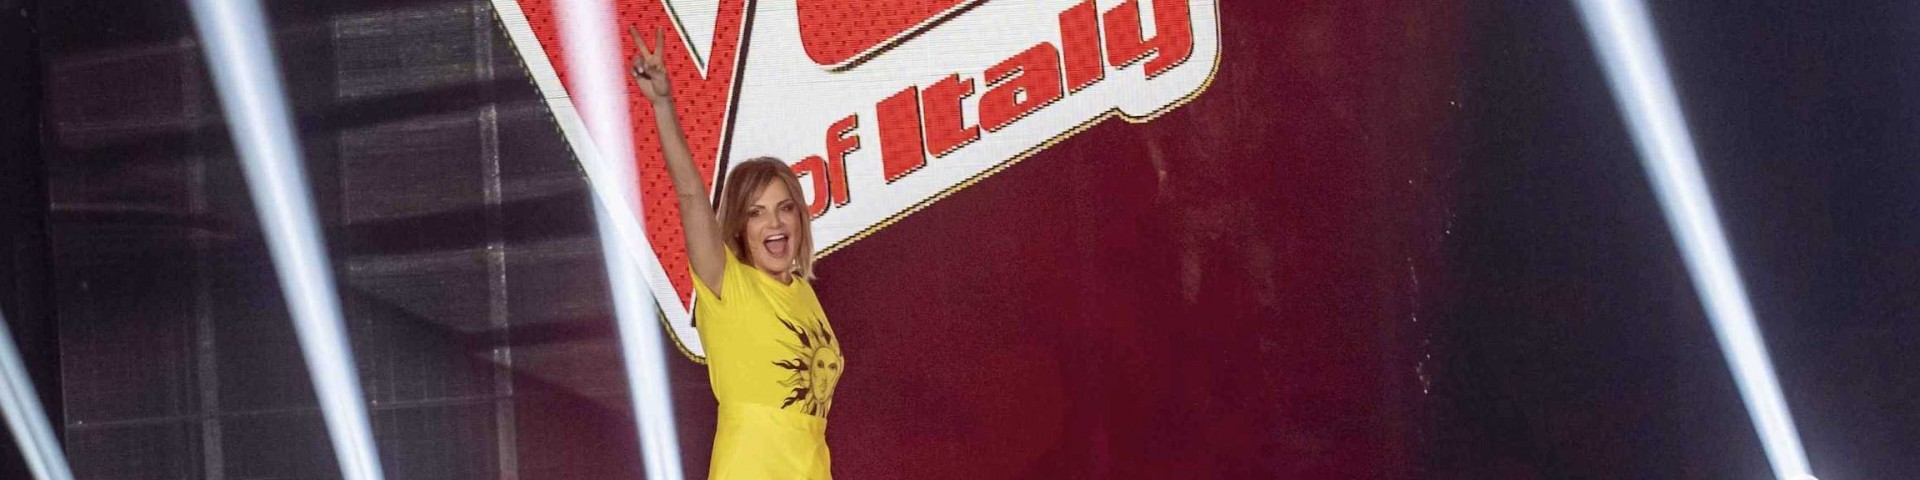 The Voice of Italy 6: leggerezza, divertimento e tanta musica nella prima puntata